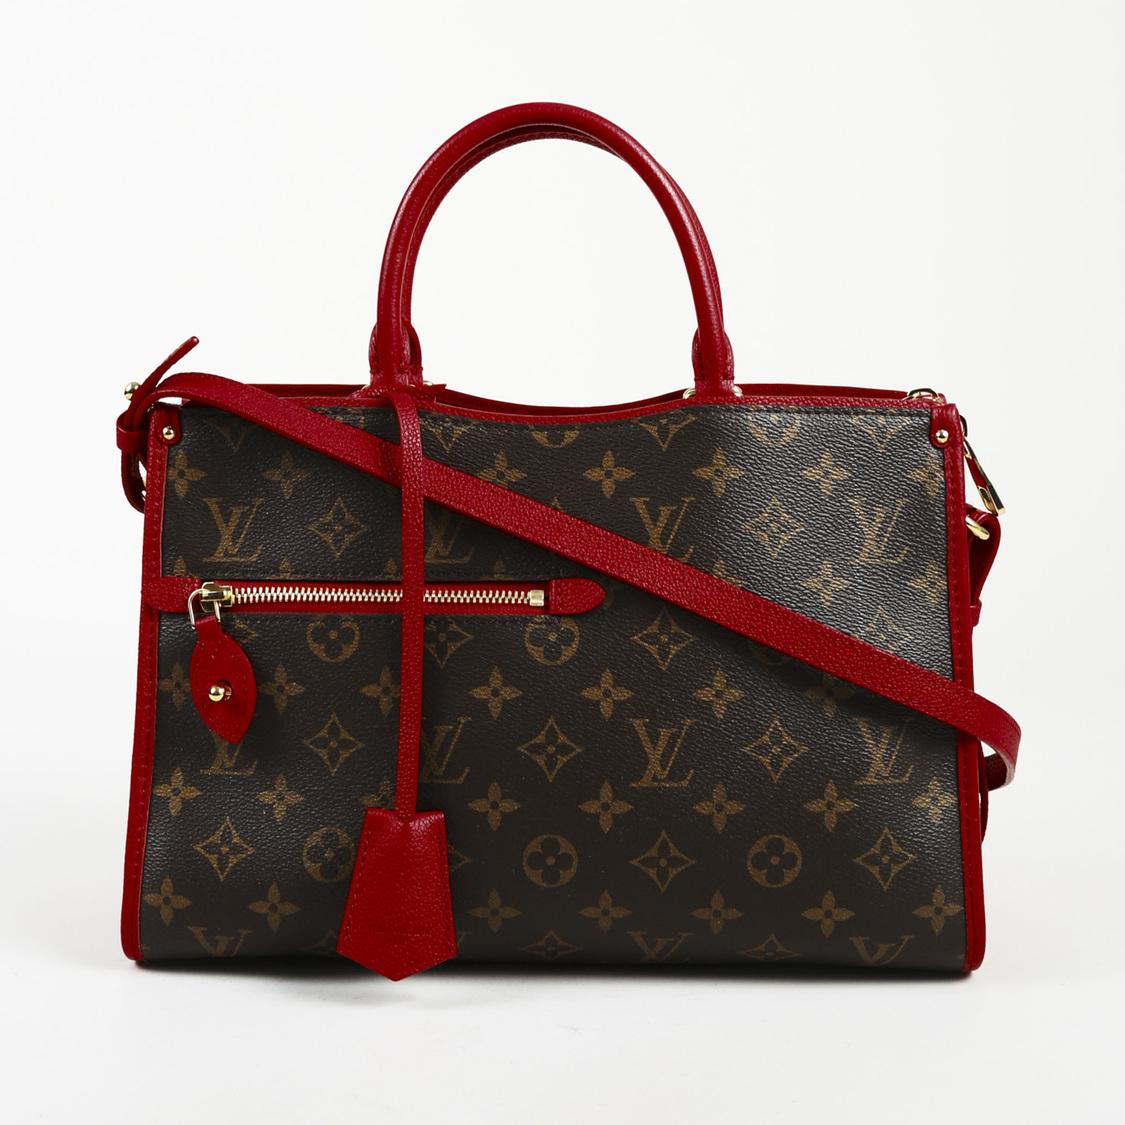 8a01eb3547b8 Lyst - Louis Vuitton Monogram Coated Canvas